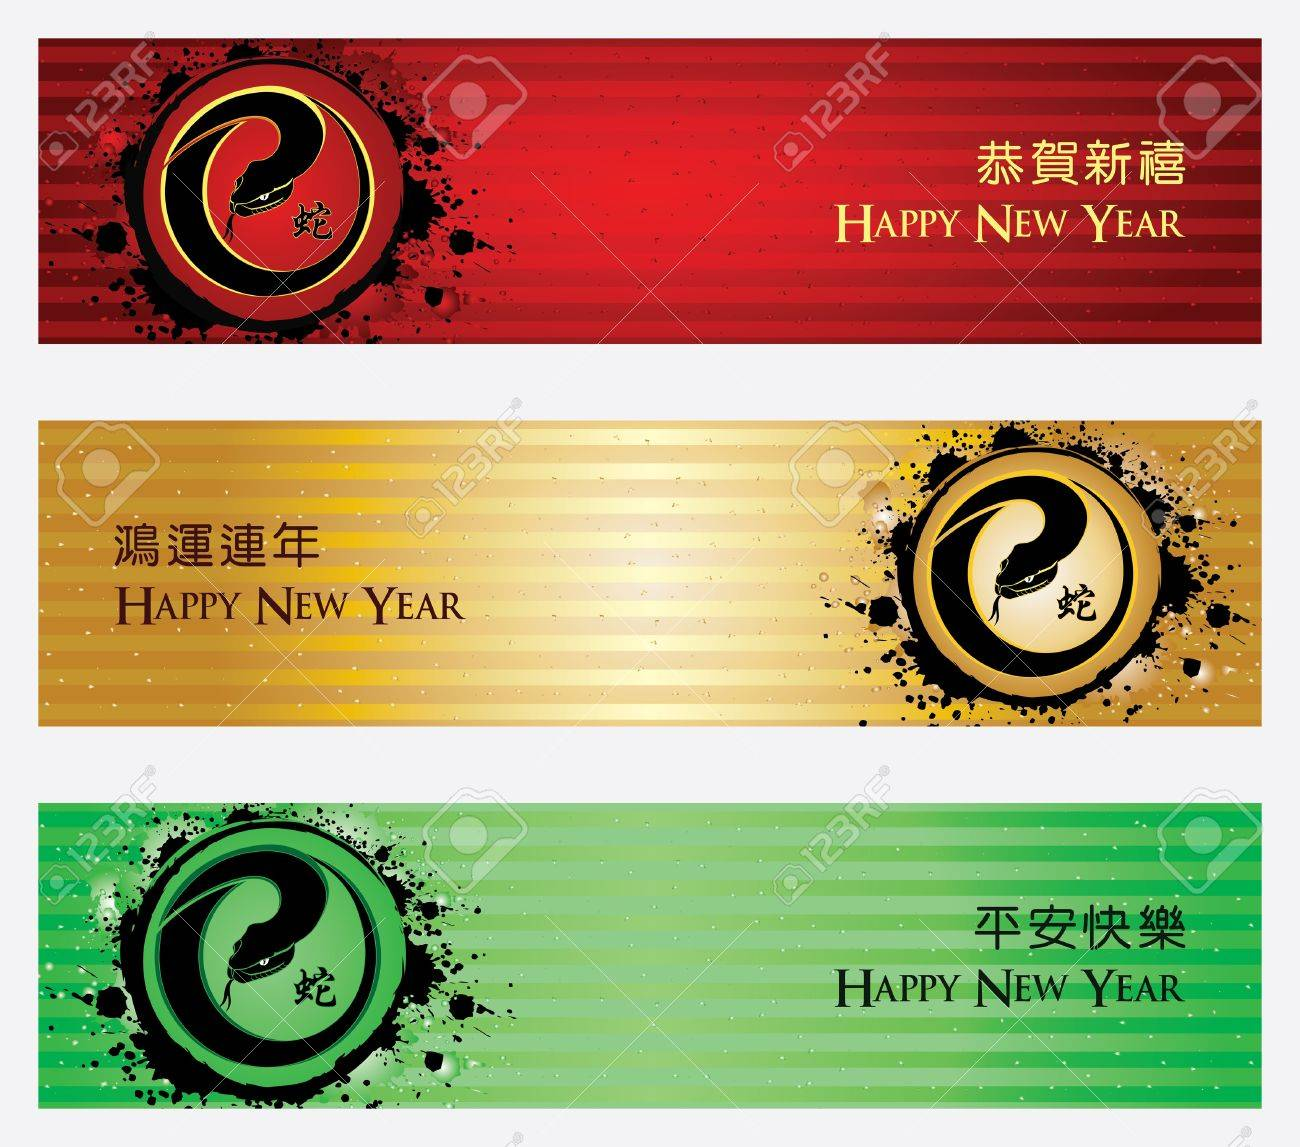 Chinese New Year - Year of Snake Stock Vector - 16902941